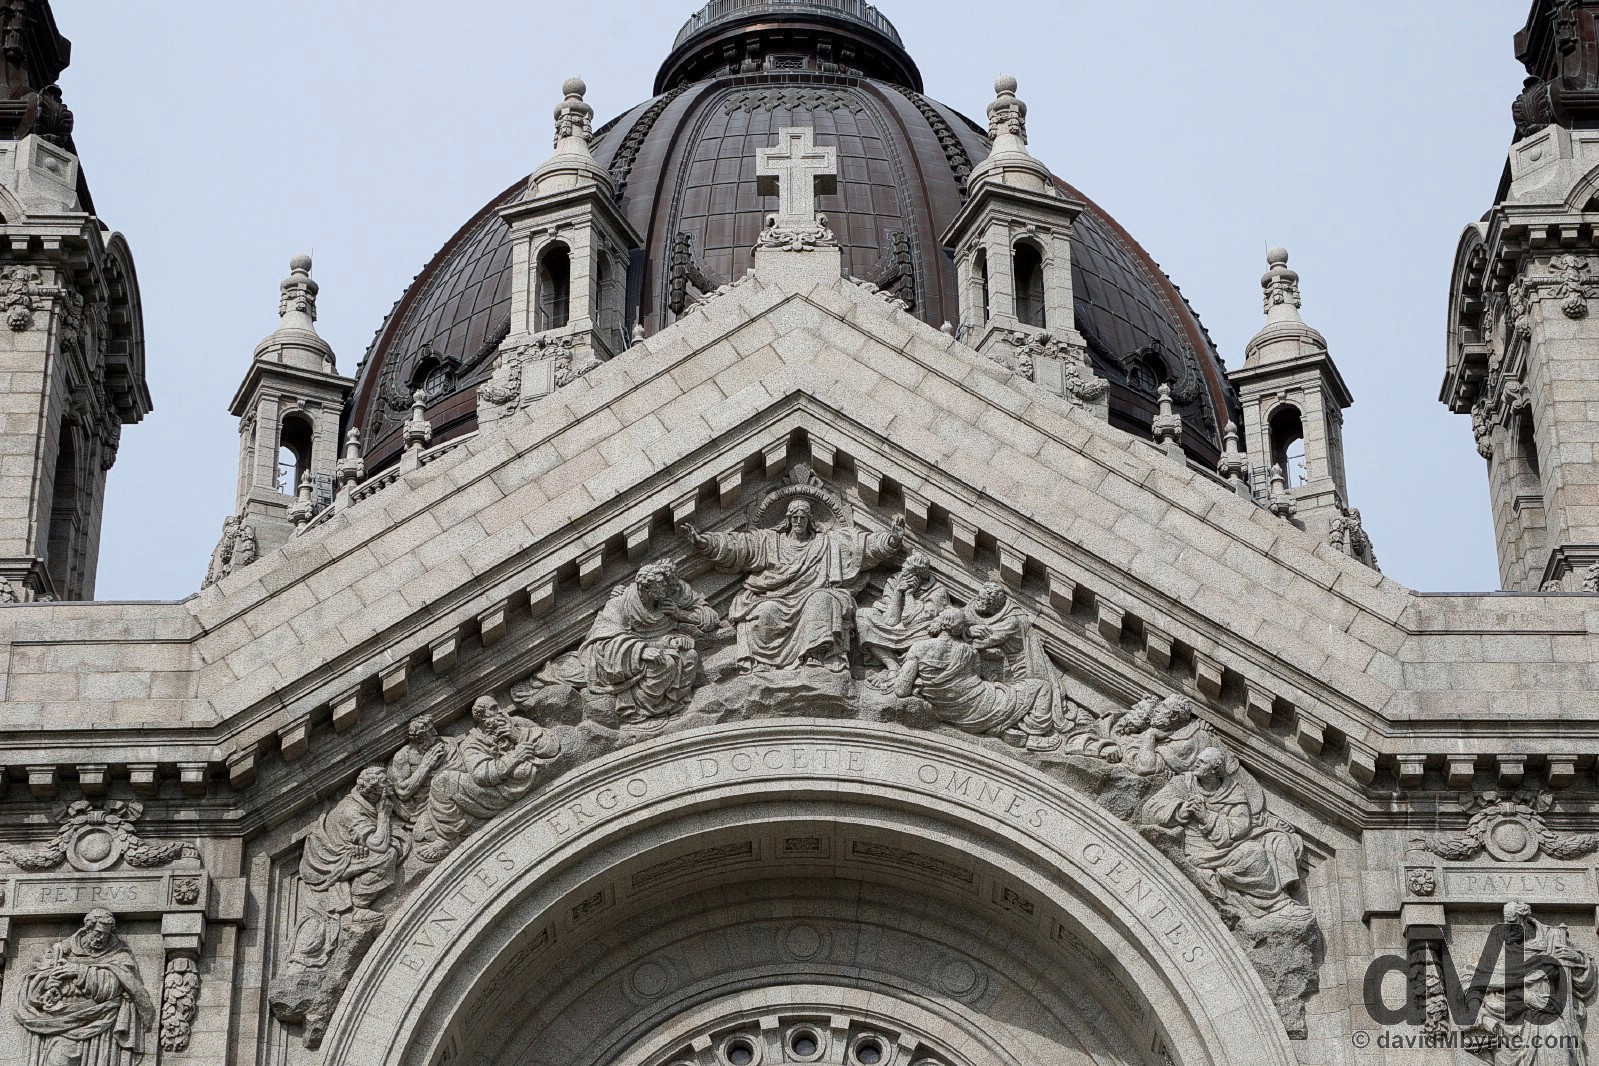 The facade of the Cathedral of Saint Paul in Saint Paul, Minnesota, USA. August 30, 2016.